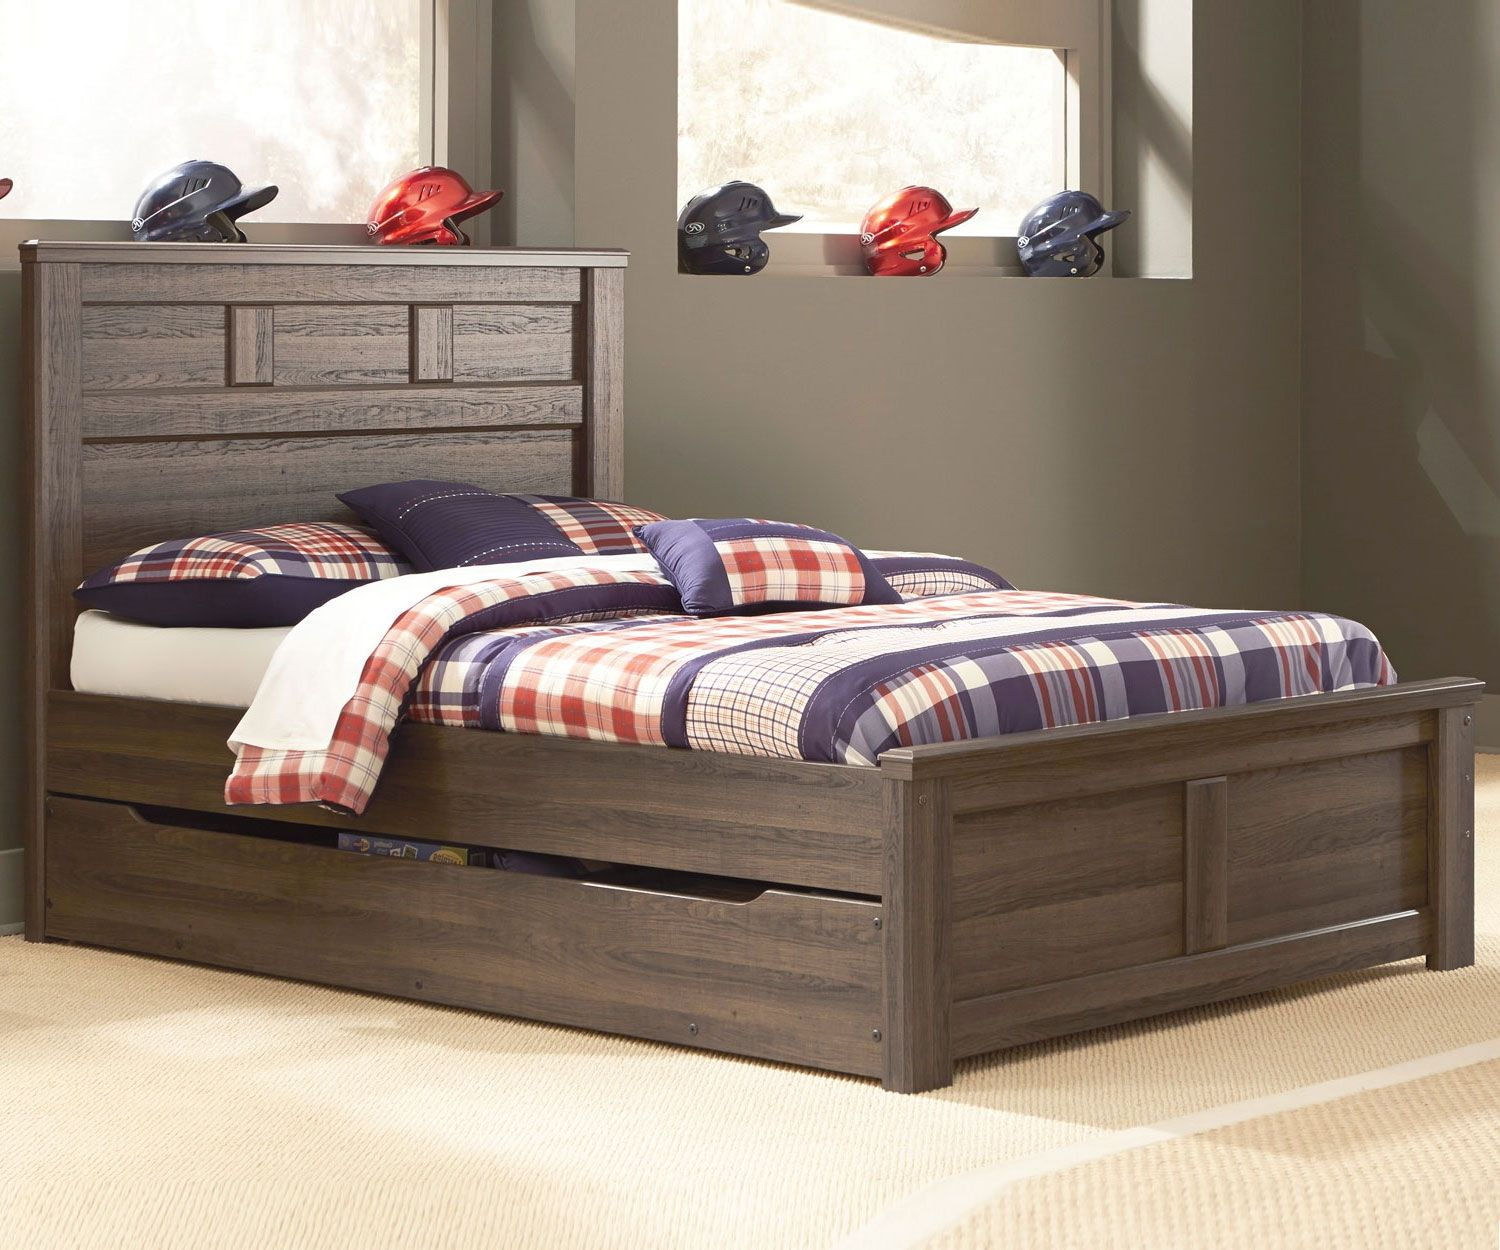 Juararo Full Size Panel Bed with Trundle | Pinterest | Full size ...